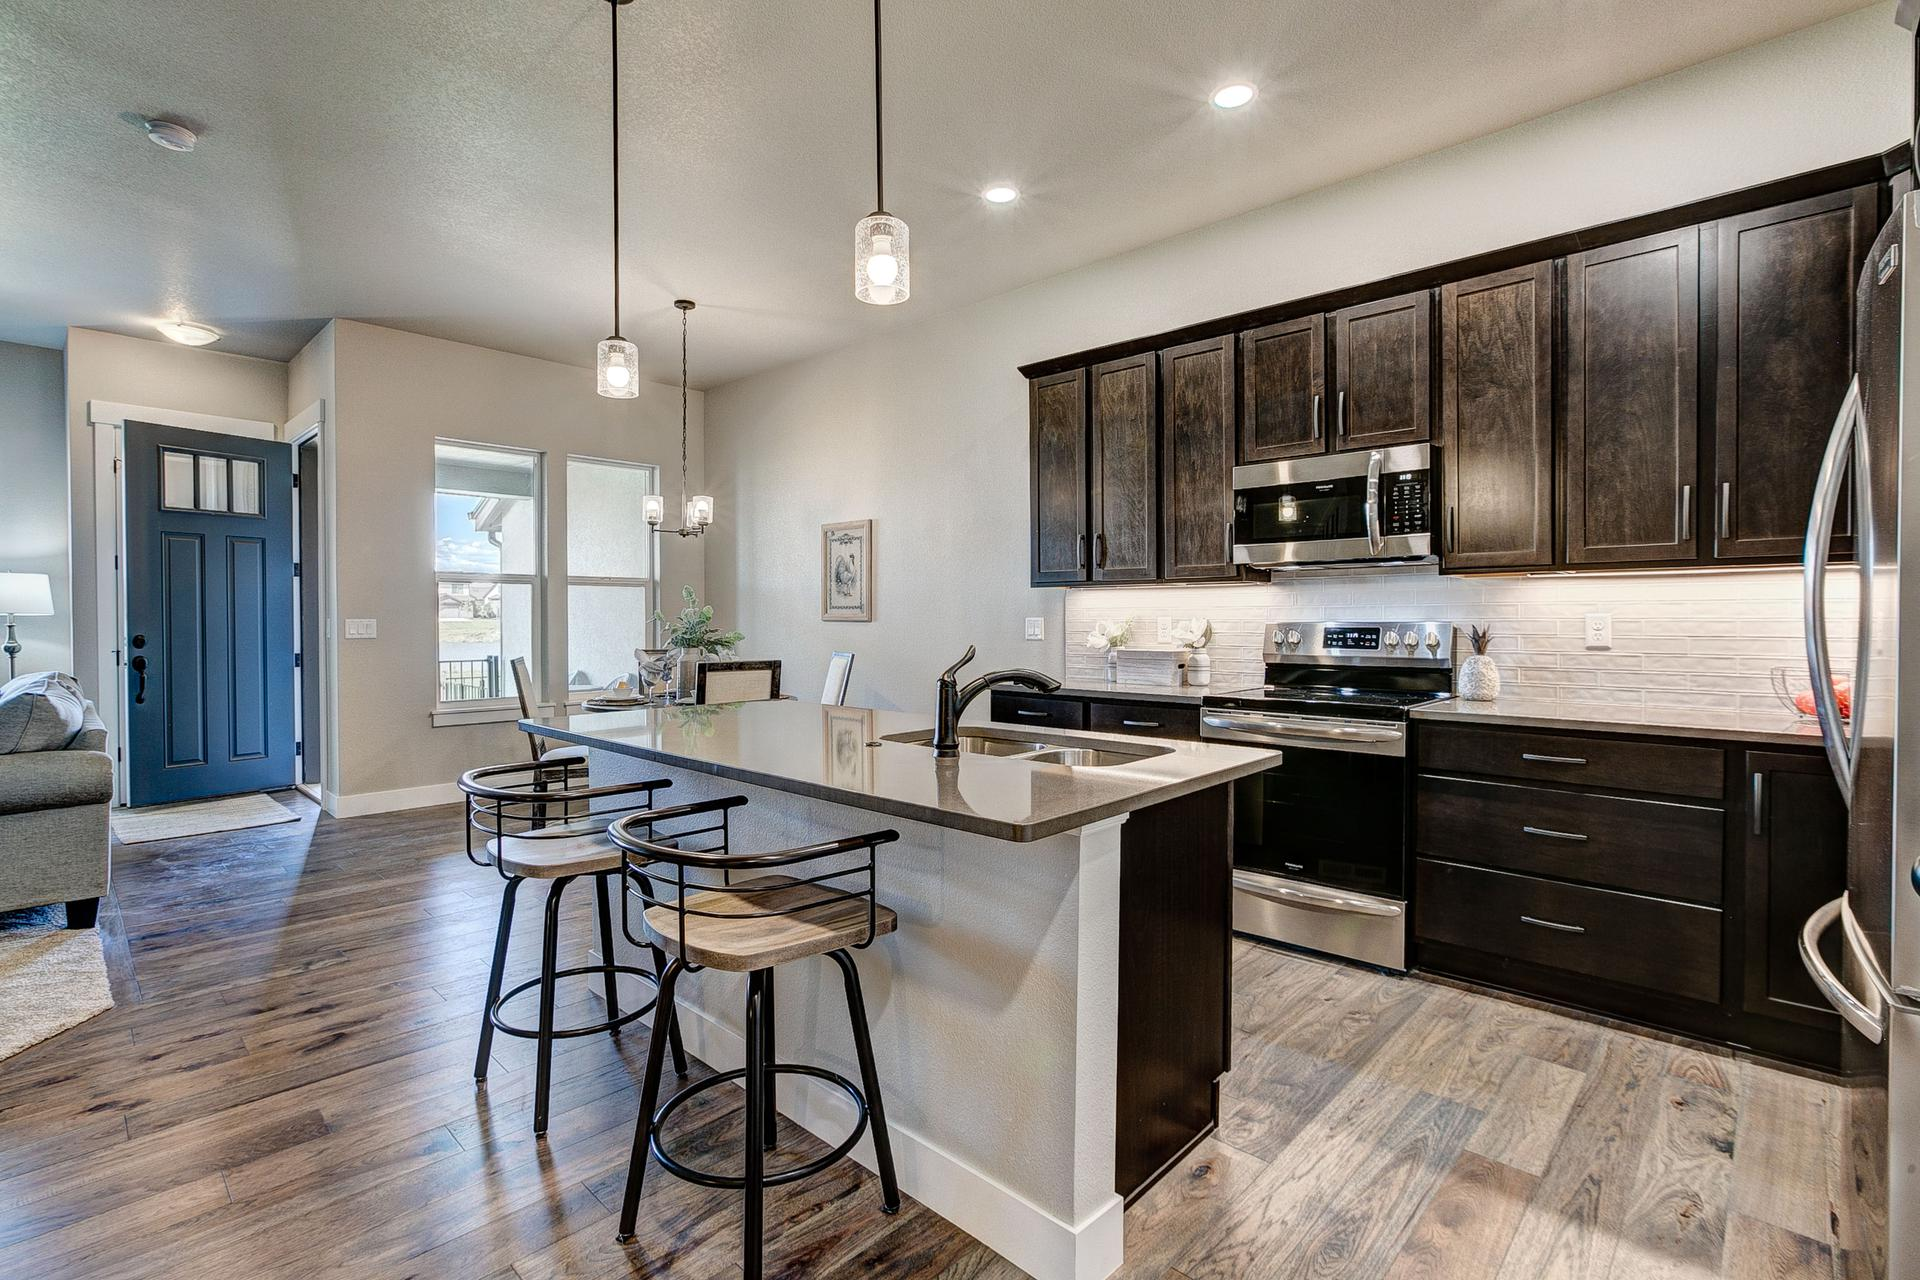 Kitchen - Not Actual Home - Finishes Will Vary . Windsor, CO New Home